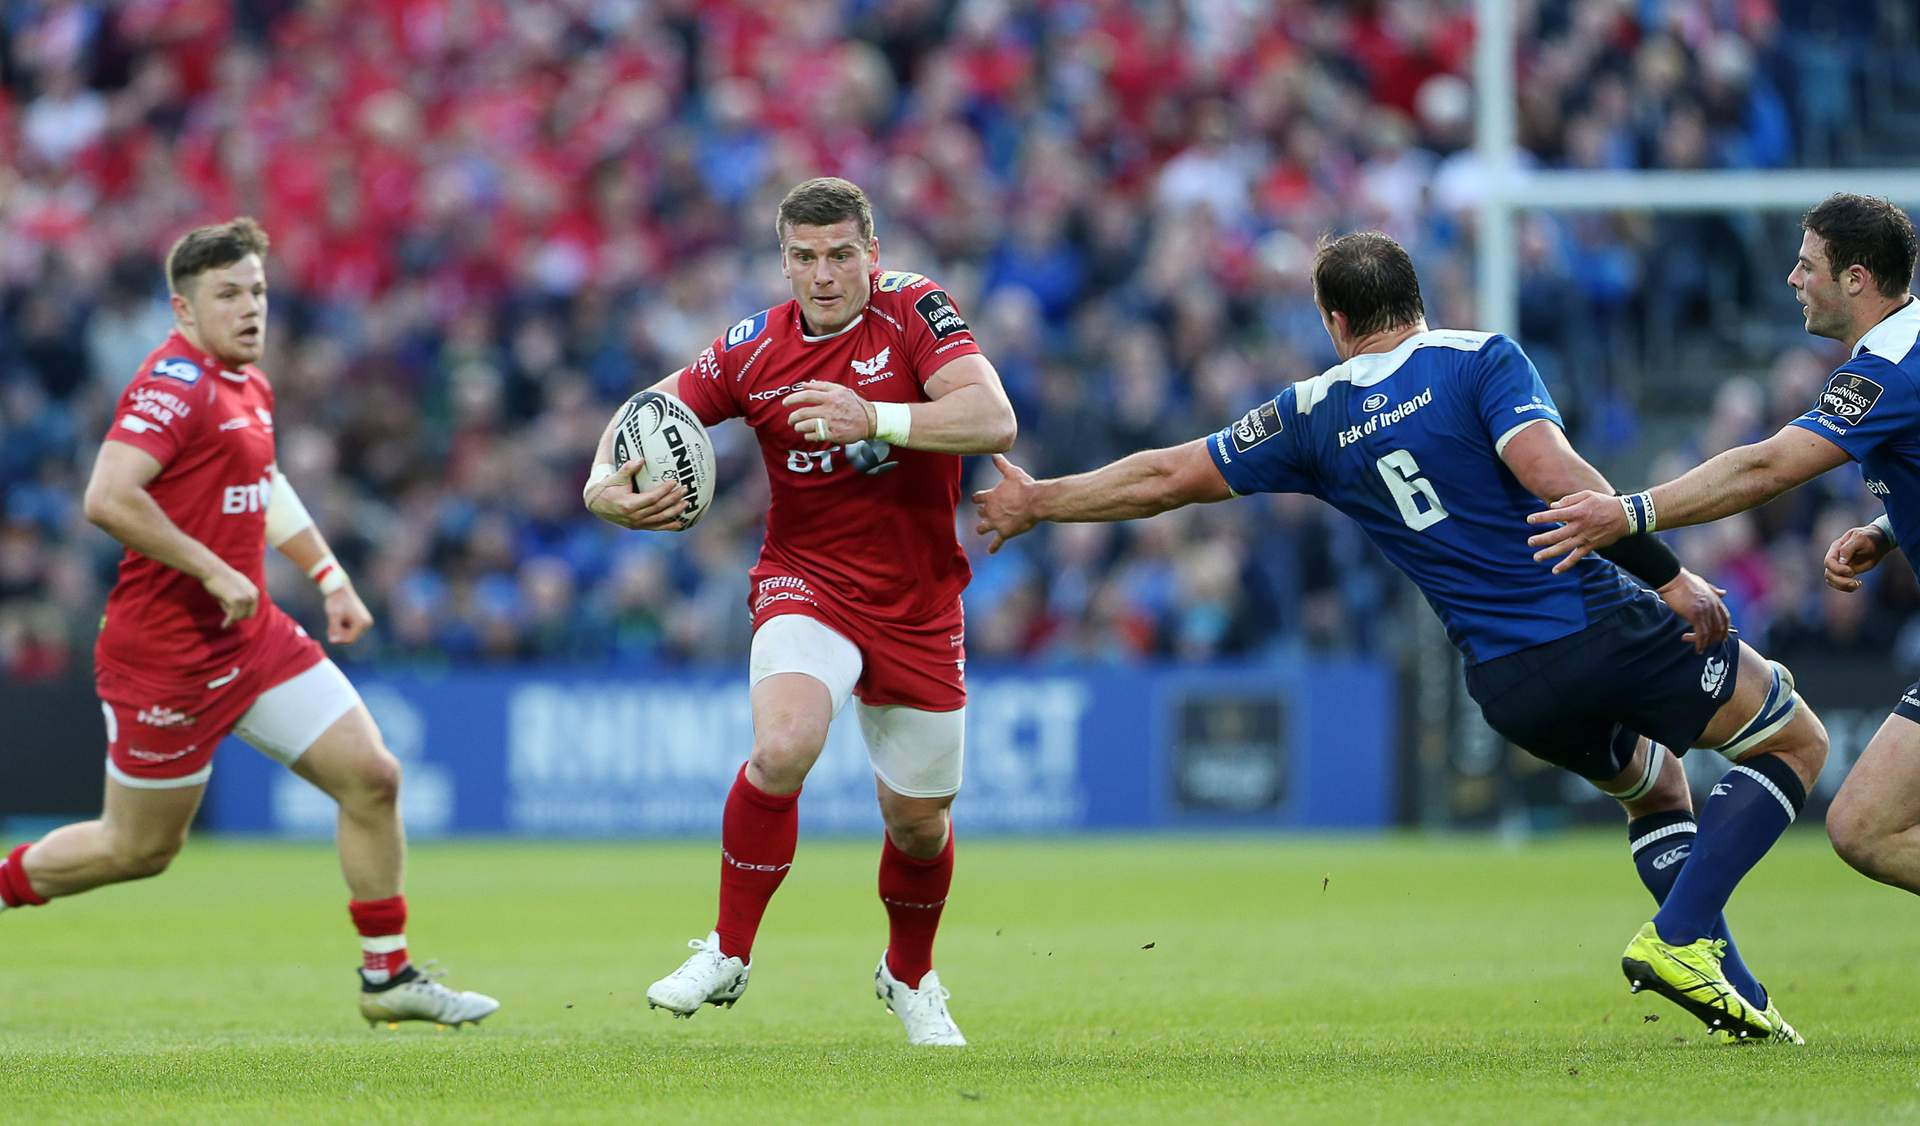 Scott's Scarlets are best in a decade